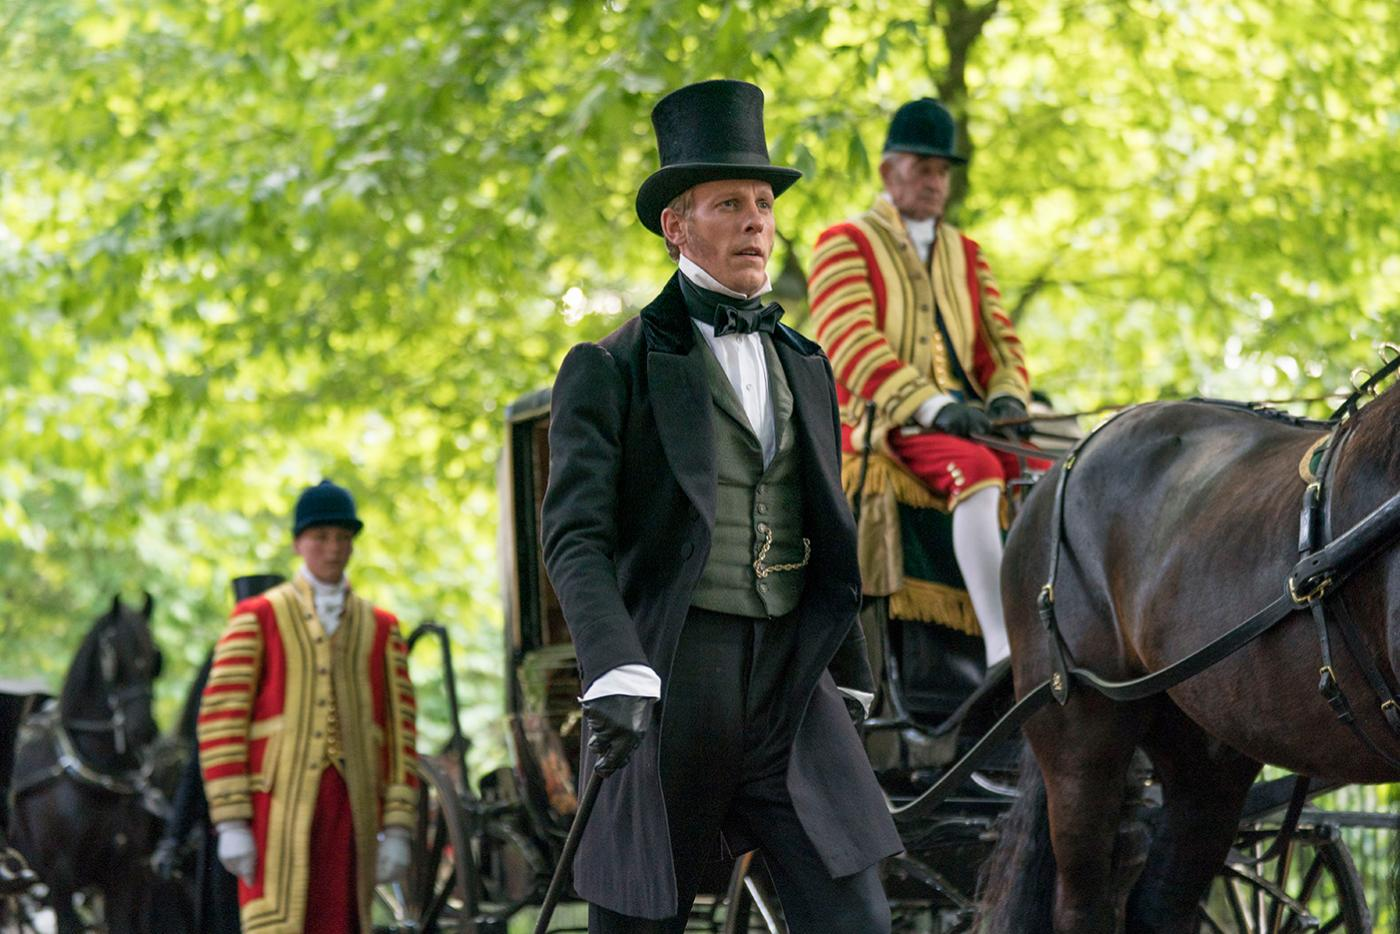 Laurence Fox as Lord Palmerston in Victoria. Photo: Aimee Spinks/ITV Plc for MASTERPIECE